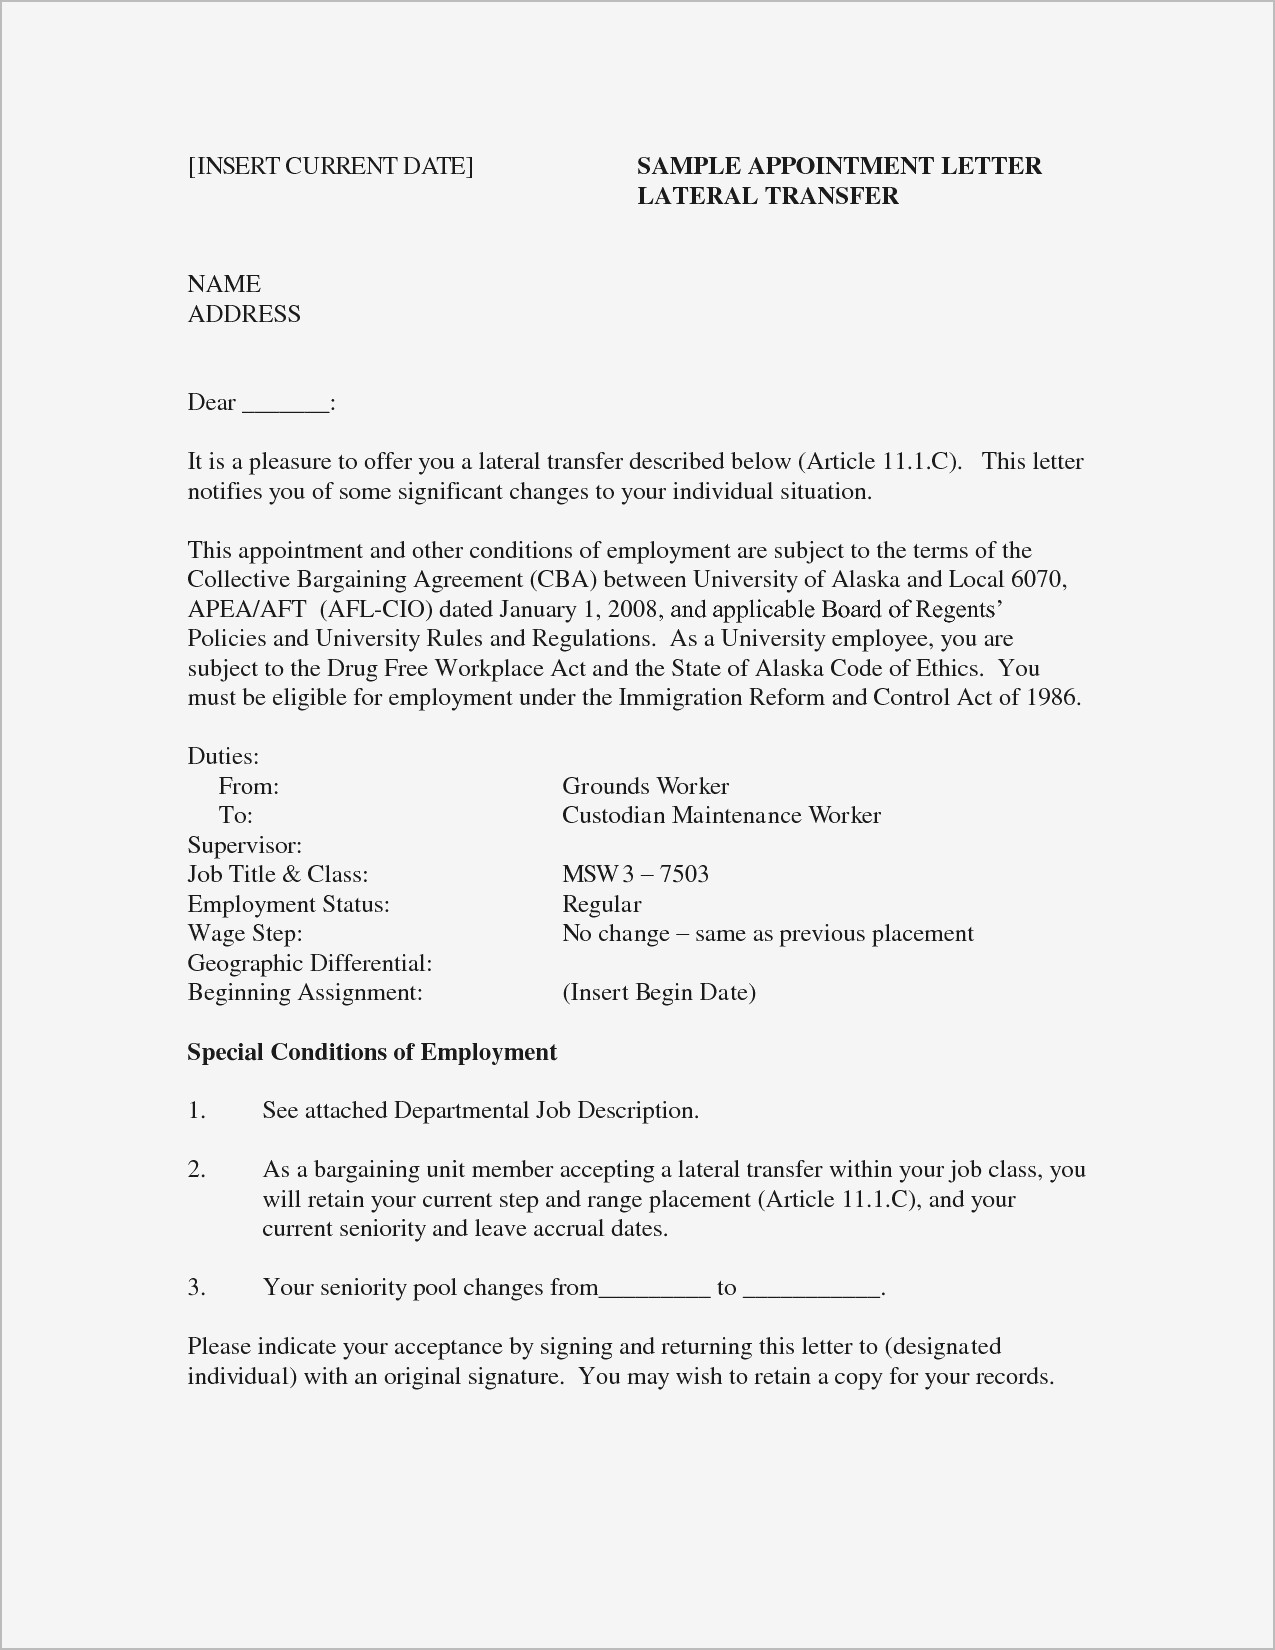 Letter of instruction template stock transfer collection letter letter of instruction template stock transfer free business documents templates download save free cover letter wajeb Images